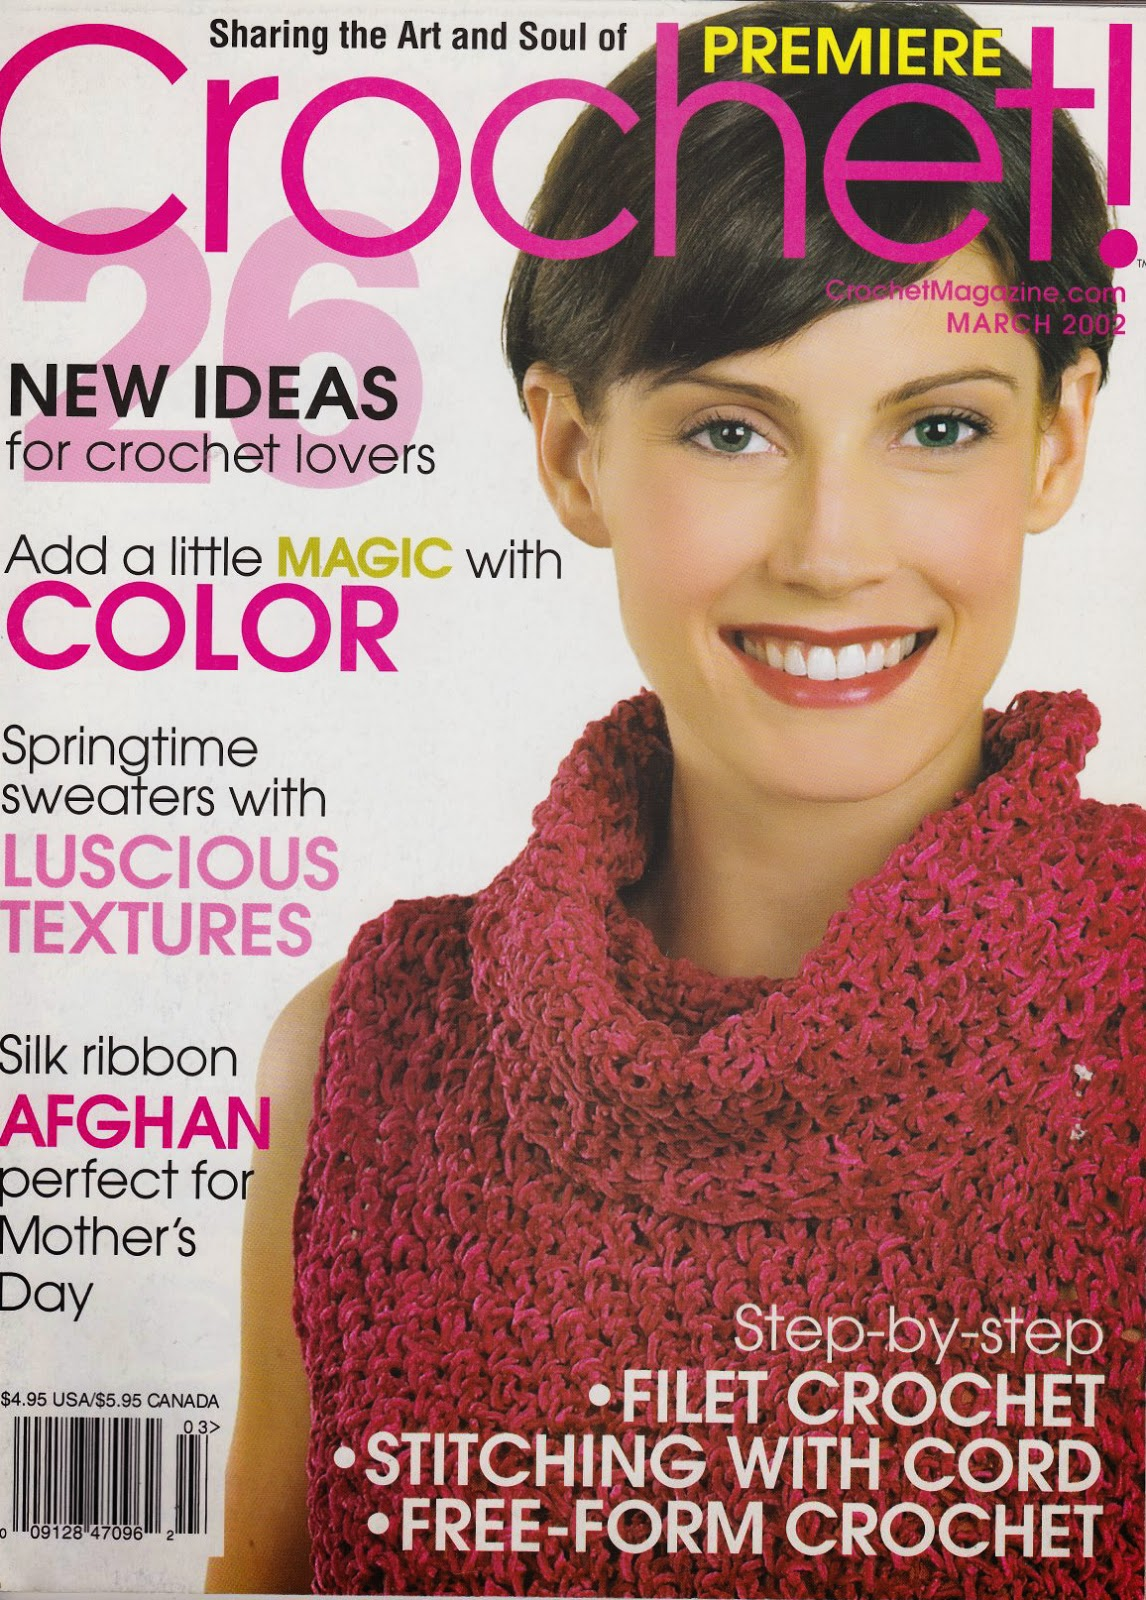 crochet a magazine that brought new ideas for crochet lovers